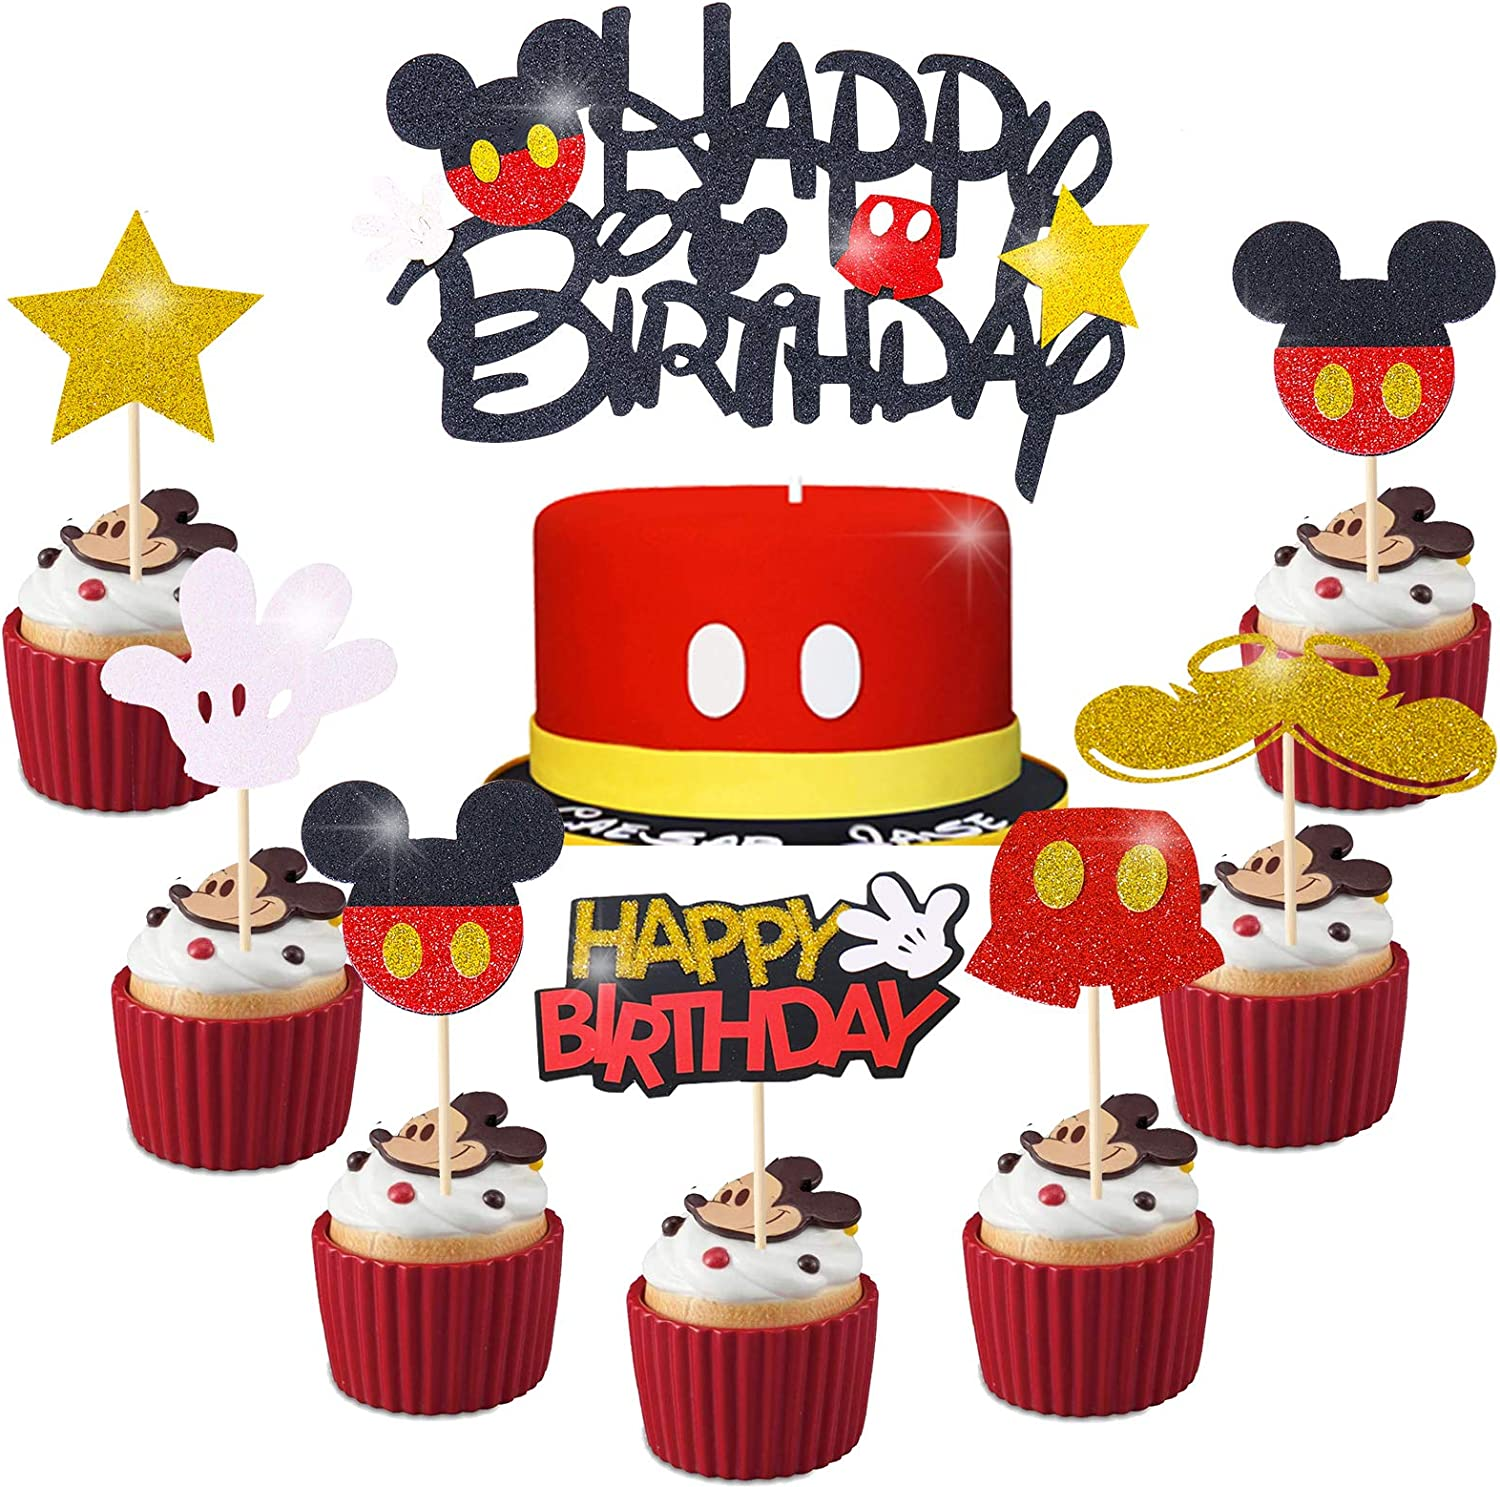 Amazon Com Mickey Mouse Cupcake Cake Toppers Decoration For Kids Birthday Baby Shower Clubhouse Supplies Micky Party 25pcs Topper Toys Games